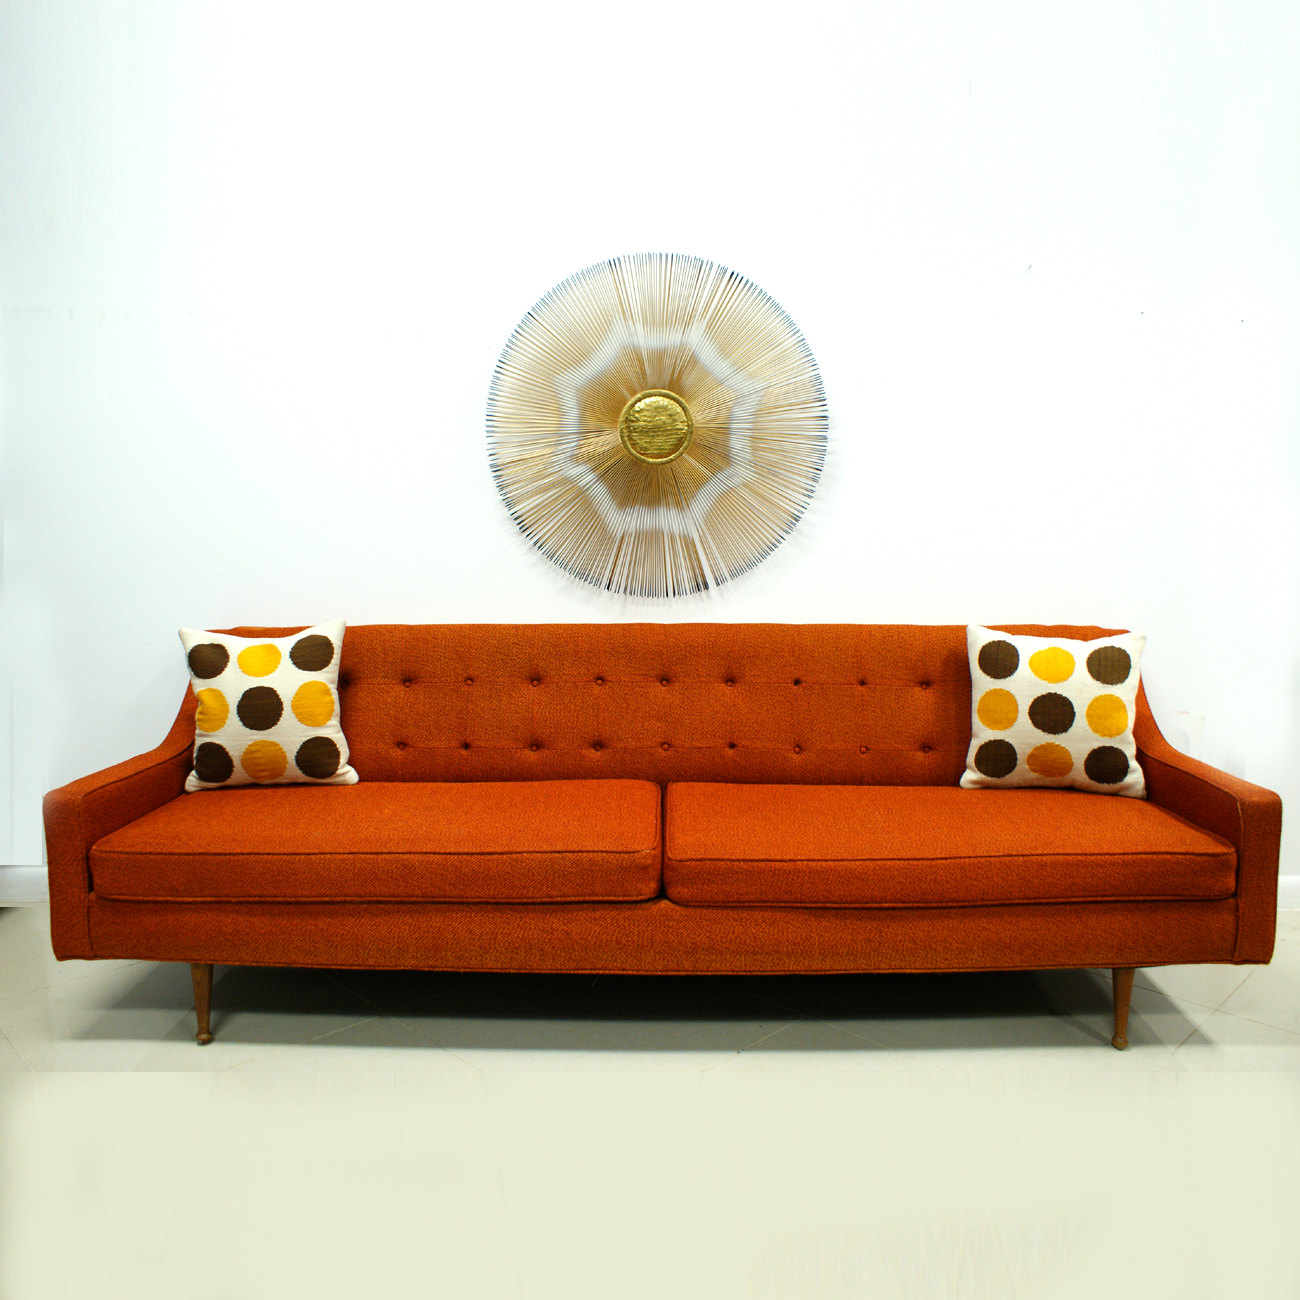 Sofas: Marvelous Modern Minimalist Orange Sofa Splash Color Cushion ...